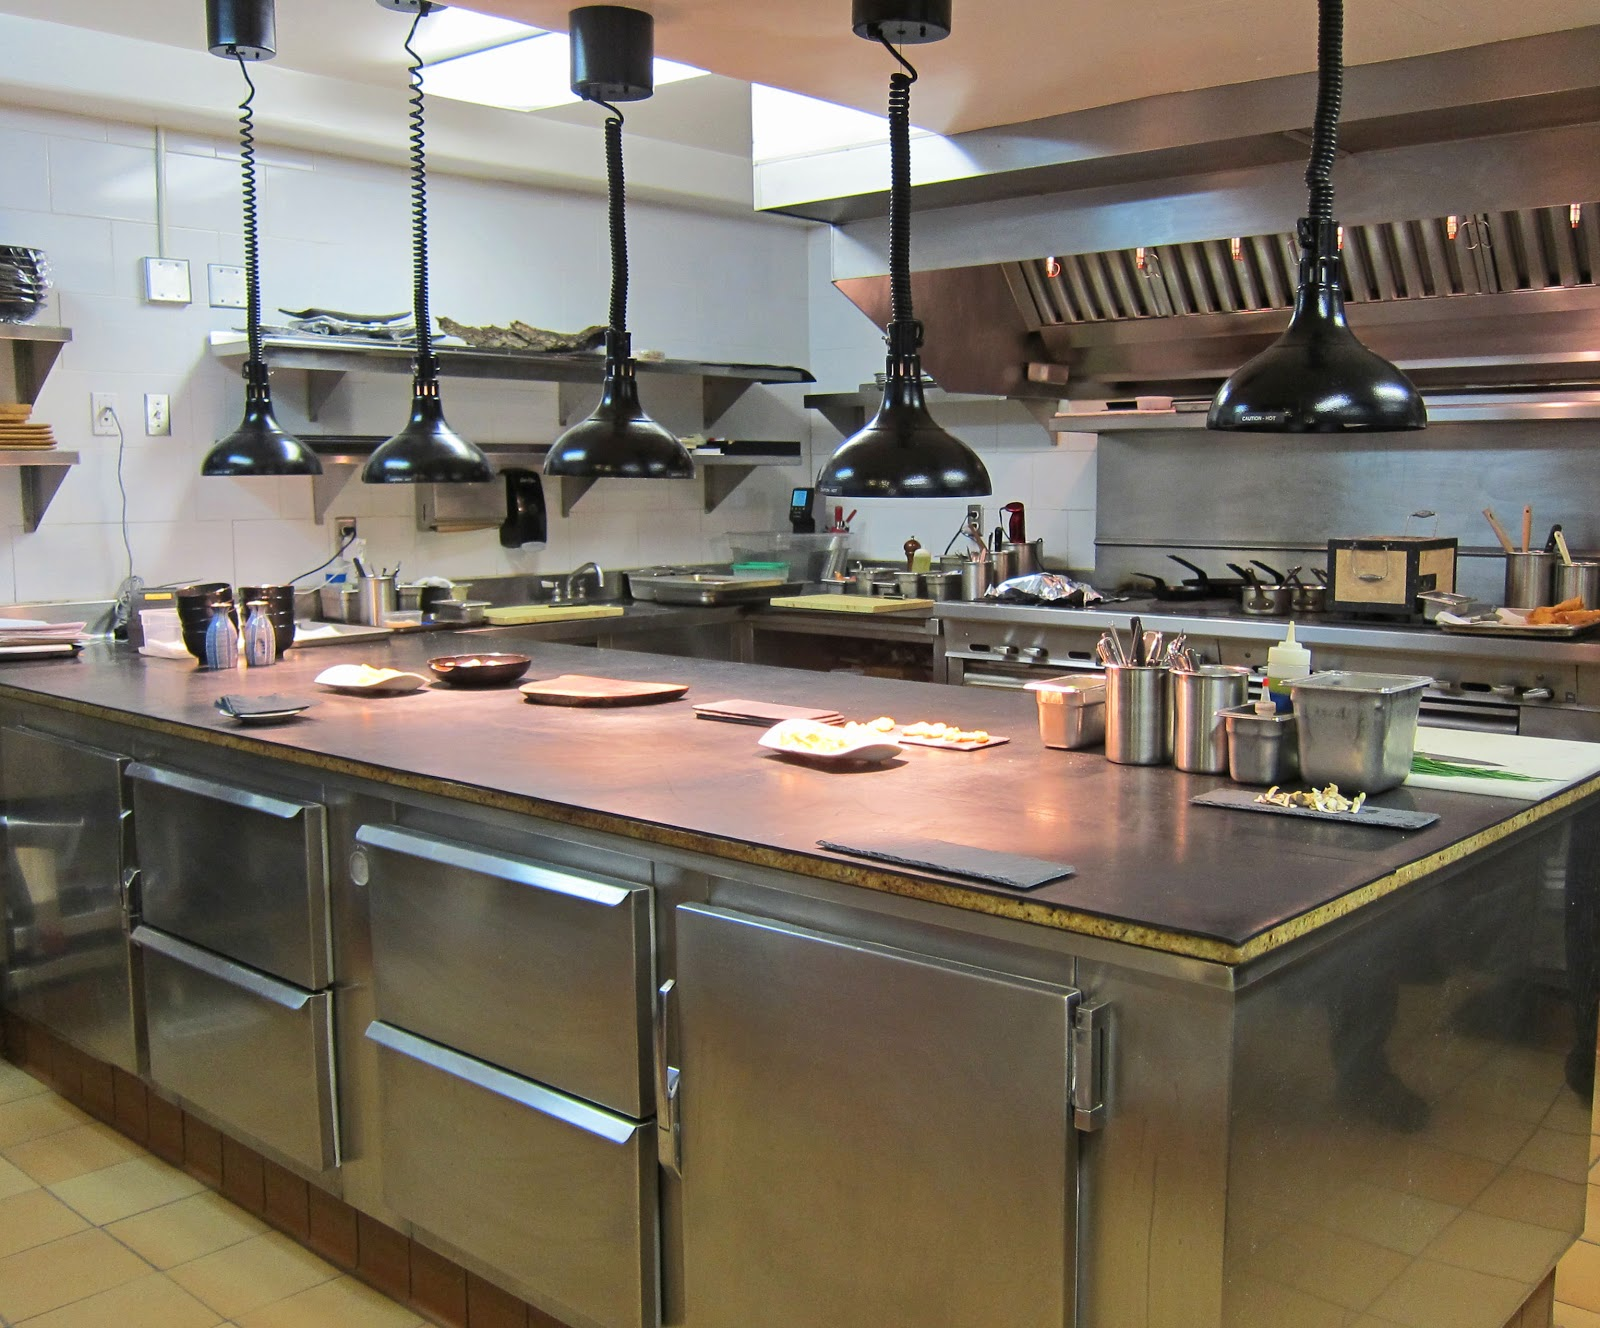 Restaurant Kitchen Lighting 98+ ideas image restaurant kitchen lighting on vouum